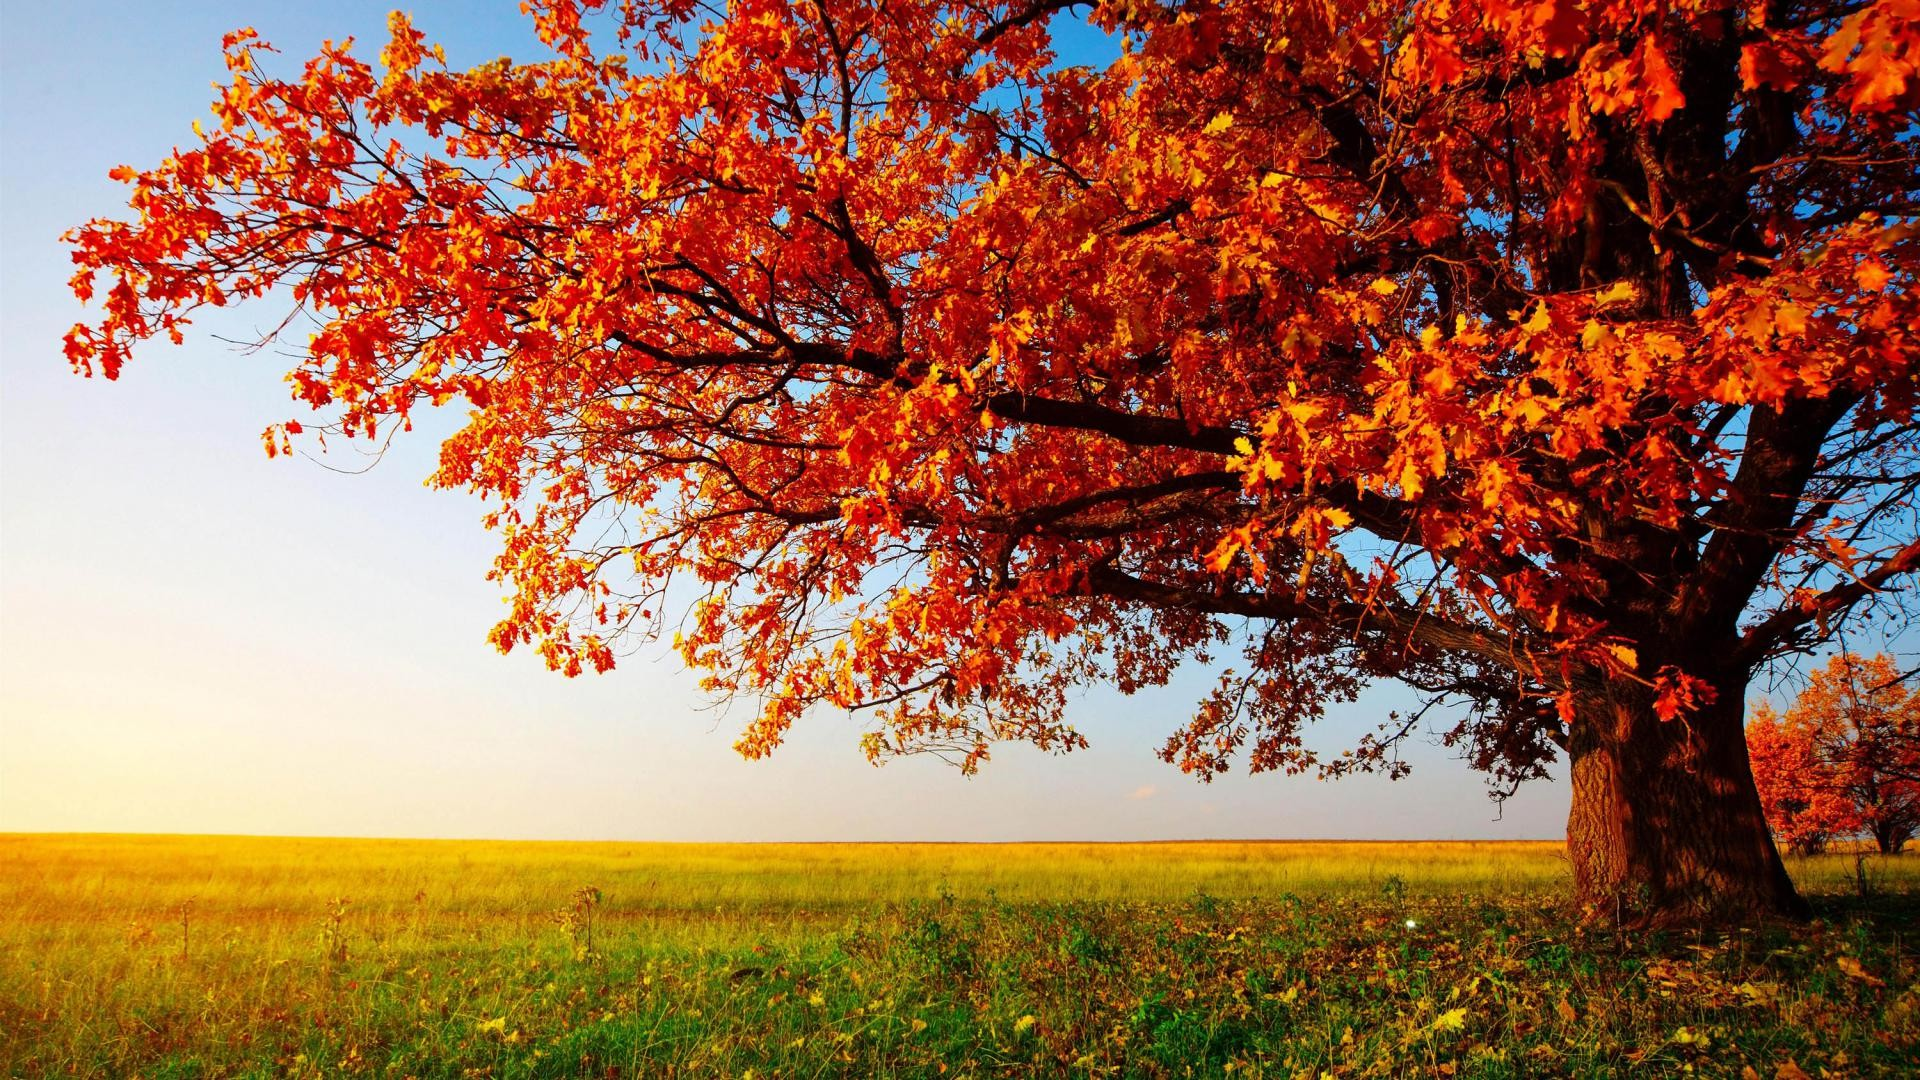 Autumn hd widescreen wallpaper 71 images 1920x1080 beautiful autumn wallpaper for interior wall decor idea autumn leaves wallpaper with nice garden voltagebd Image collections